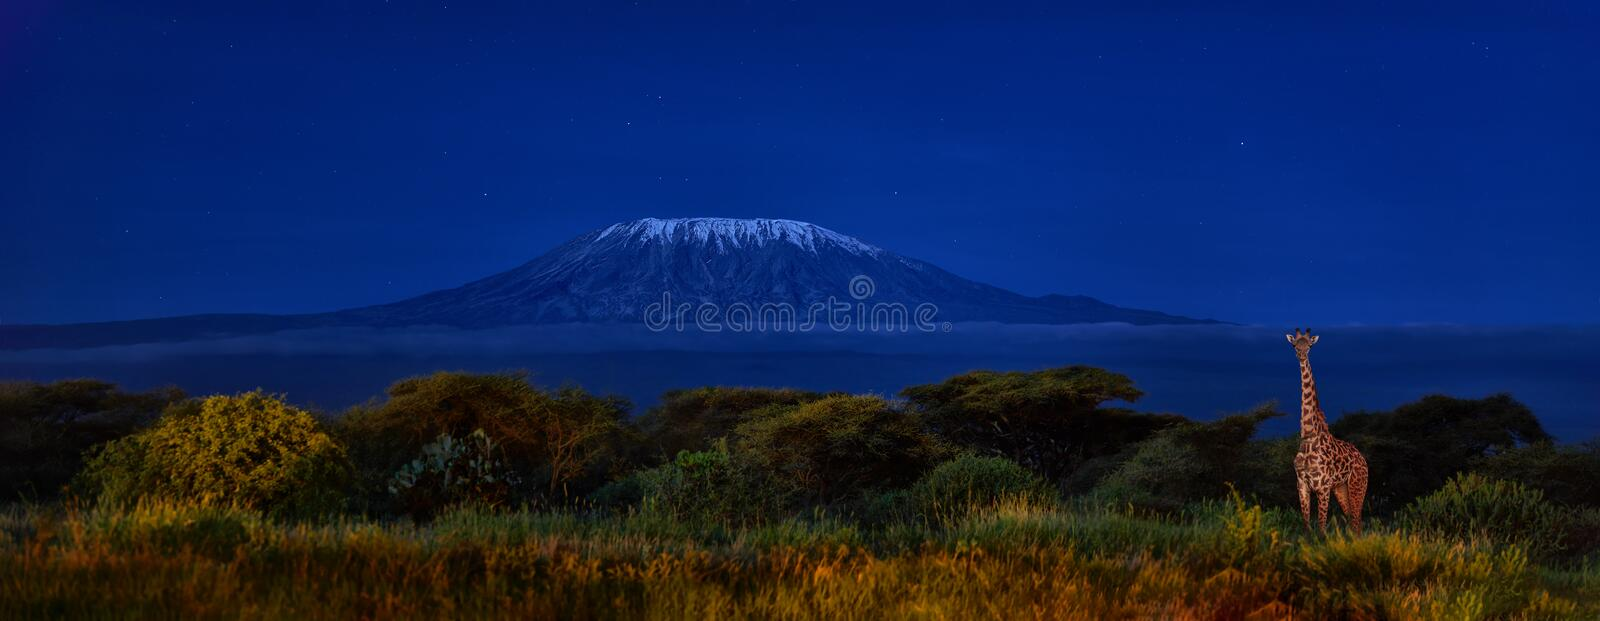 Panoramic, night picture of Mount Kilimanjaro with Masai giraffe in front, snow capped highest african mountain, lit by full moon. Against deep blue night sky stock photo